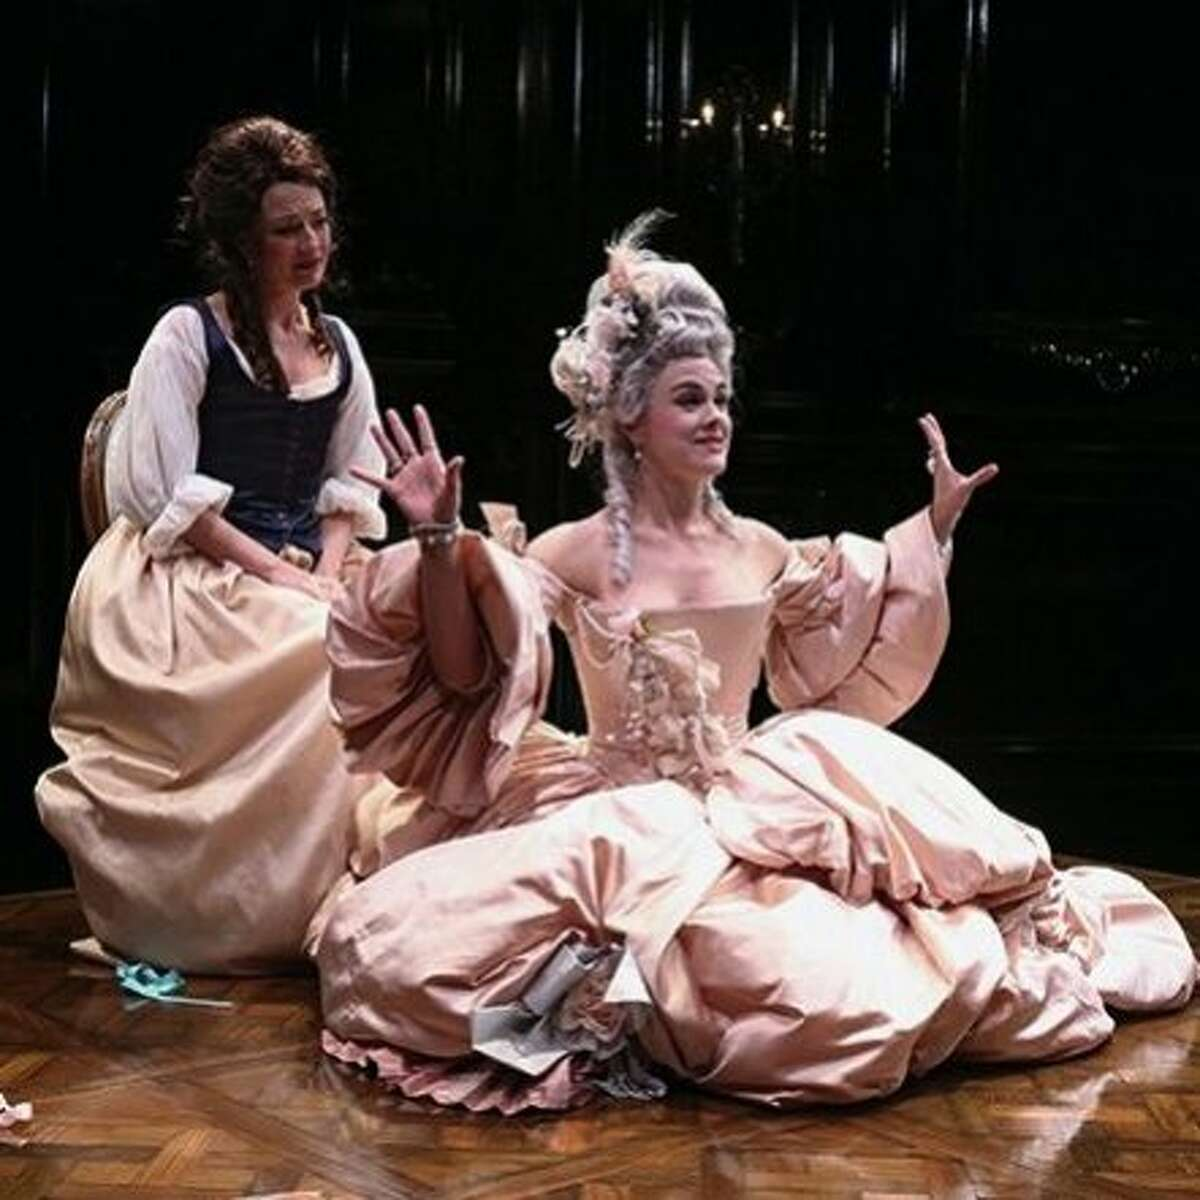 """Lisa Bruneau (left) and Jessica Lynn Carroll in the 2016 Cincinnati Playhouse production of """"The Revolutionists,"""" by Lauren Gunderson. Gunderson's play is one of many initially developed at Playwrights Foundation that went on to full productions."""